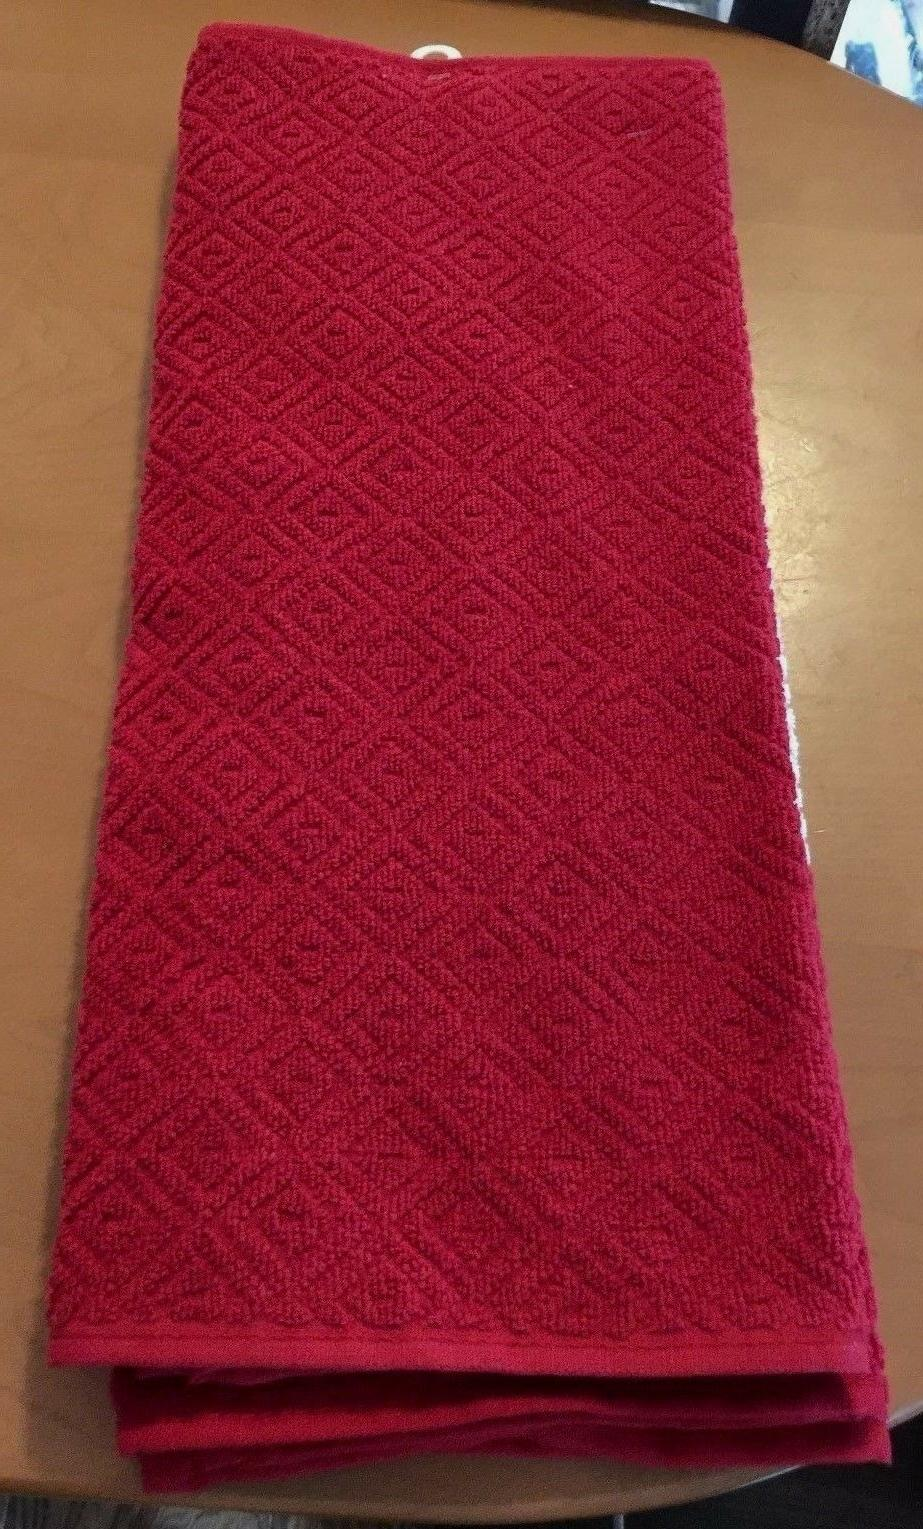 Home Cotton Red Kitchen Towels - 2pk